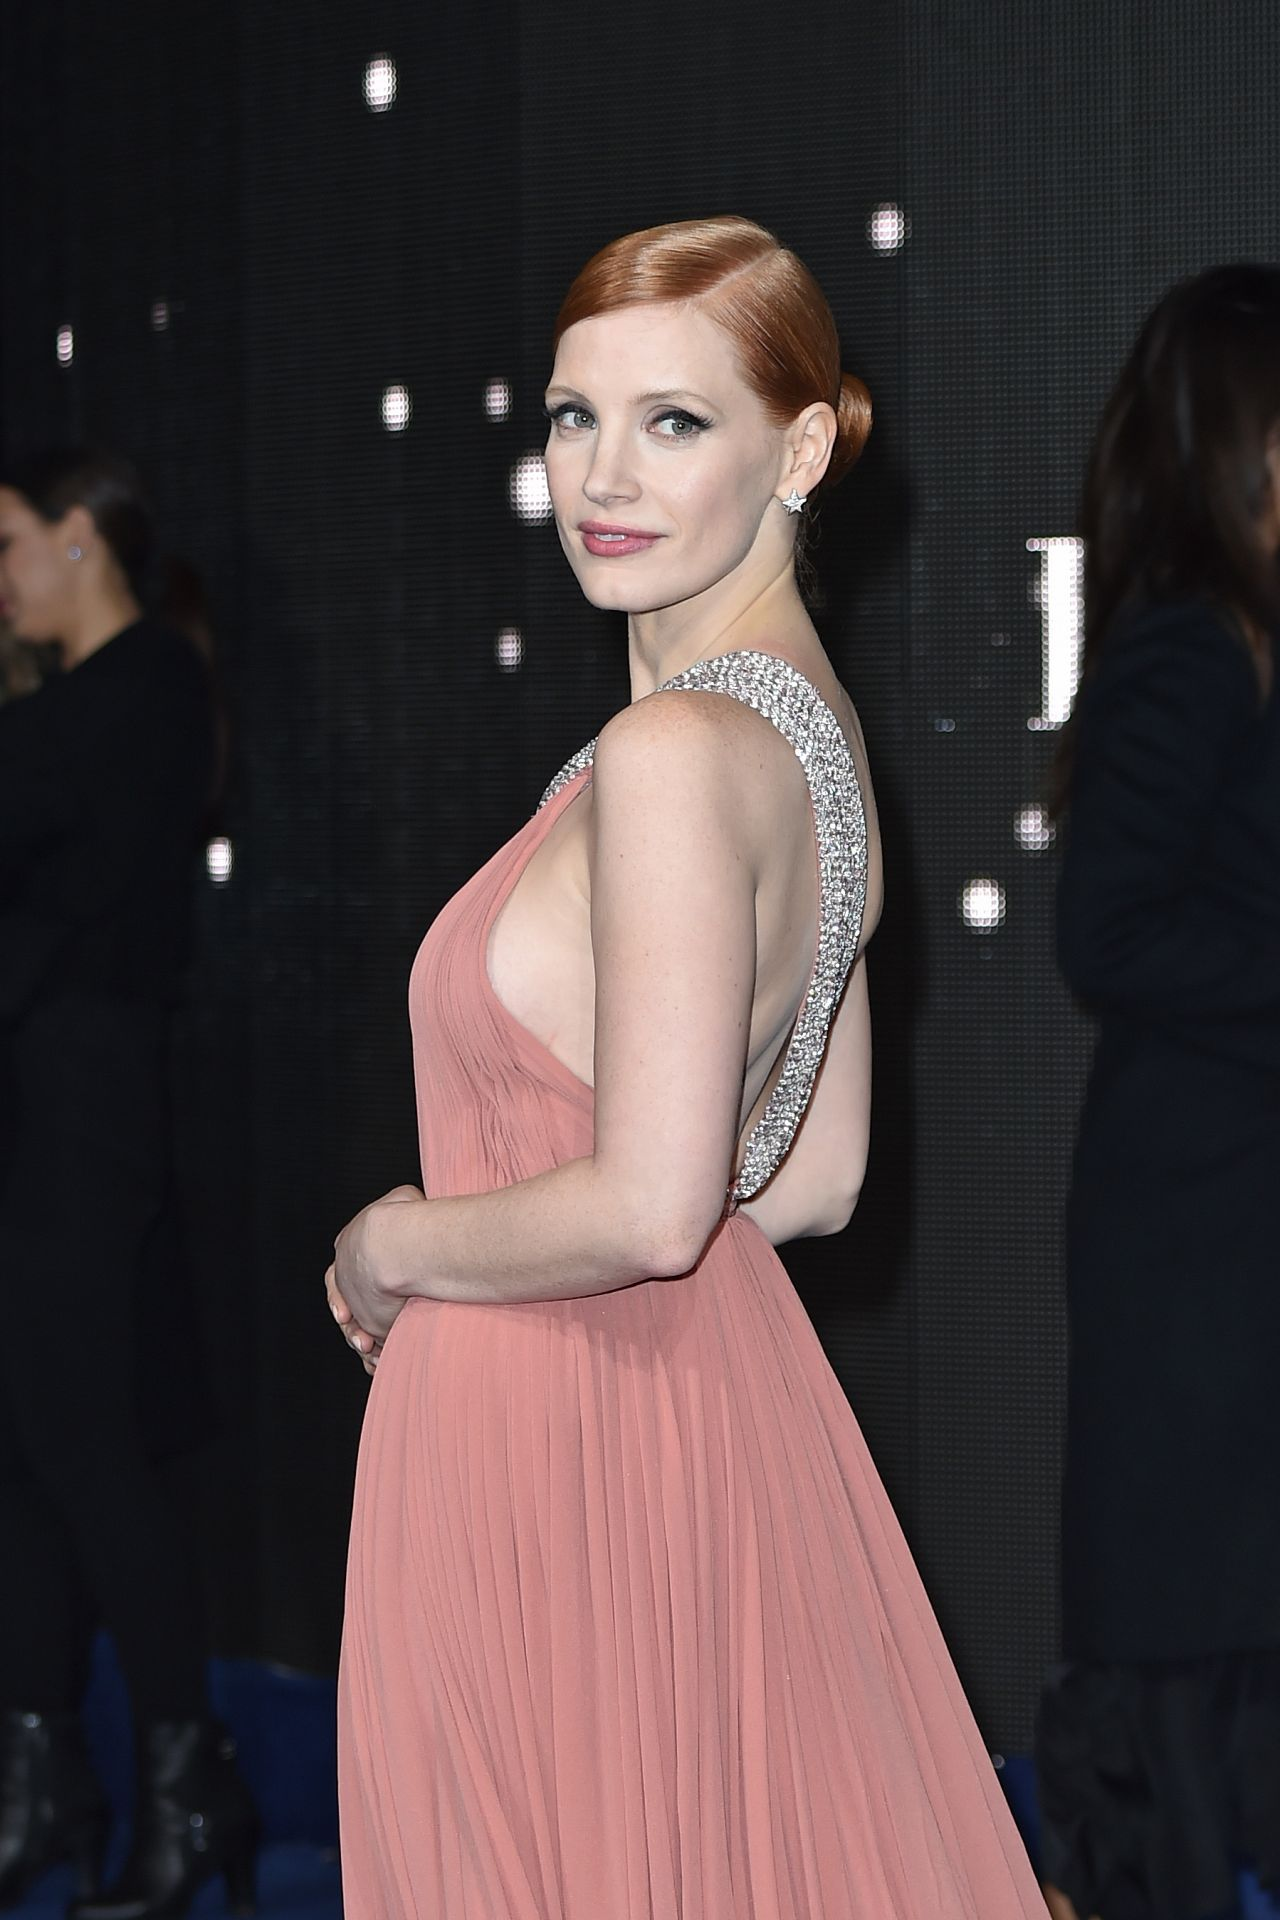 Jessica Chastain Interstellar Premiere At The Odeon